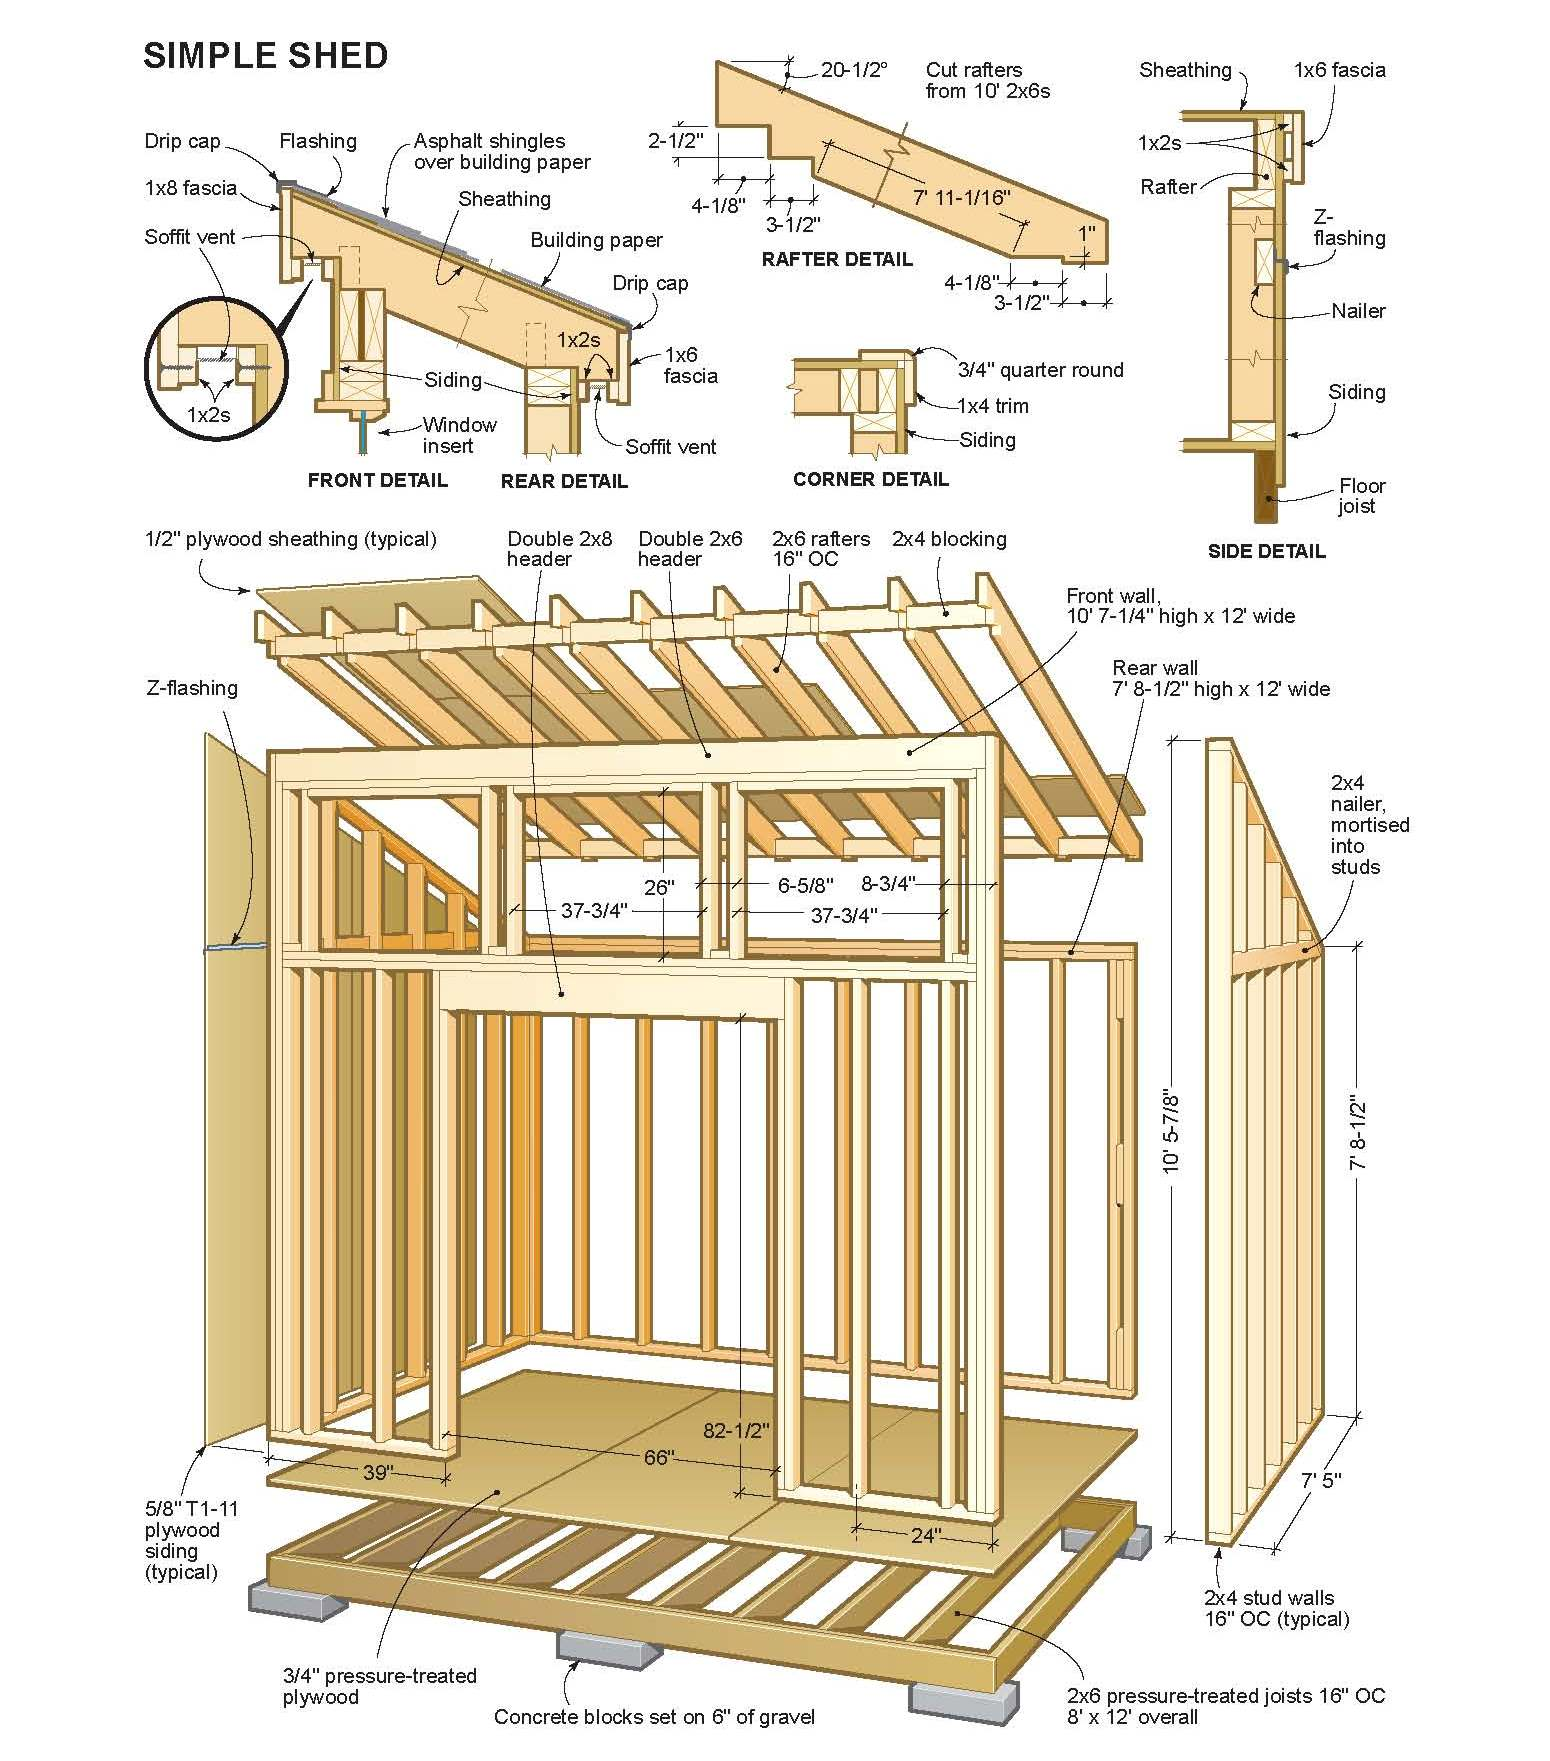 Shed blueprint tool shed plans the way to build one for Design plan build